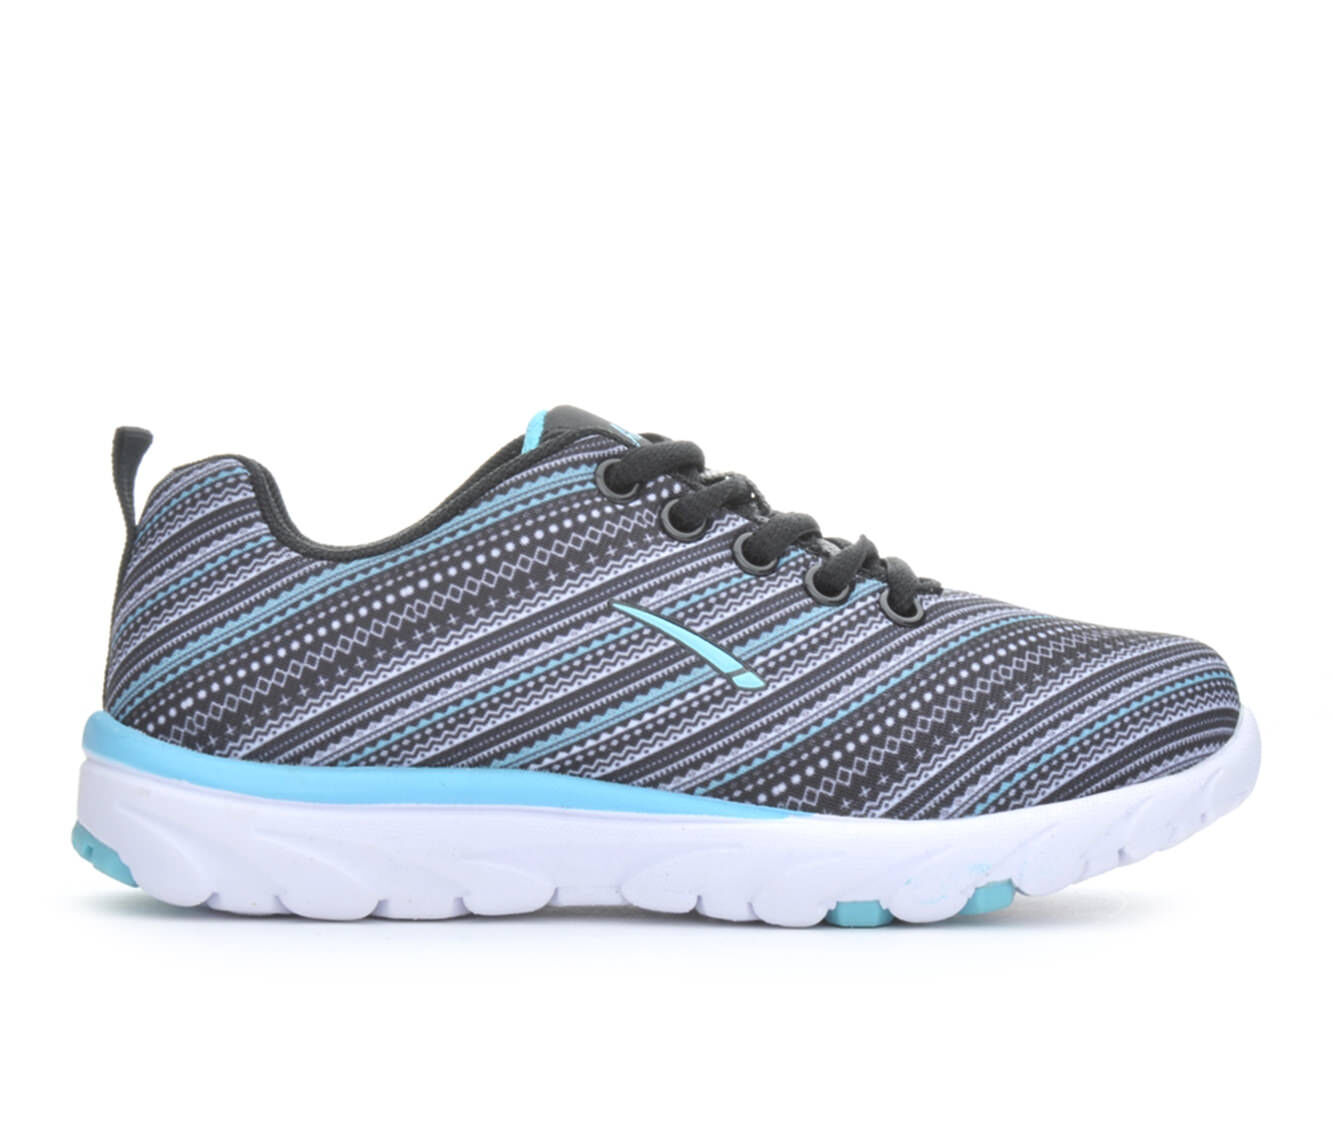 Women's L.A. Gear Anne Running Shoes recommend Manchester for sale order sale online view online J0L7I7h5HY